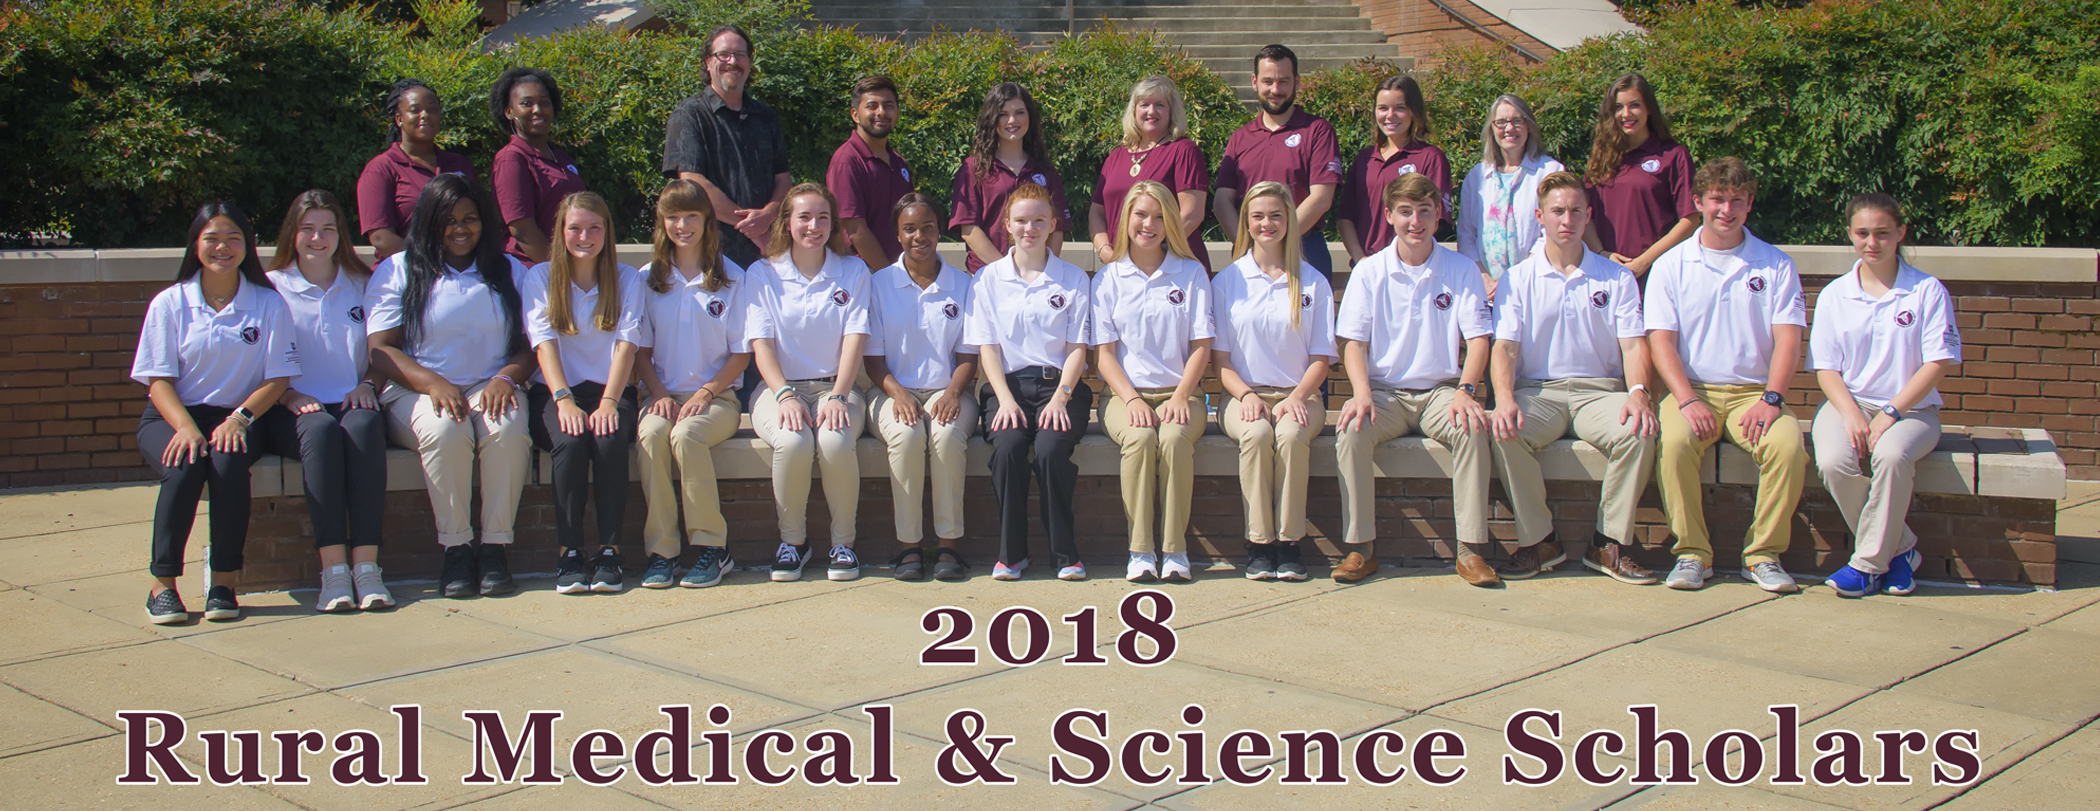 The 2018 Rural Medical Scholars pose as a group.